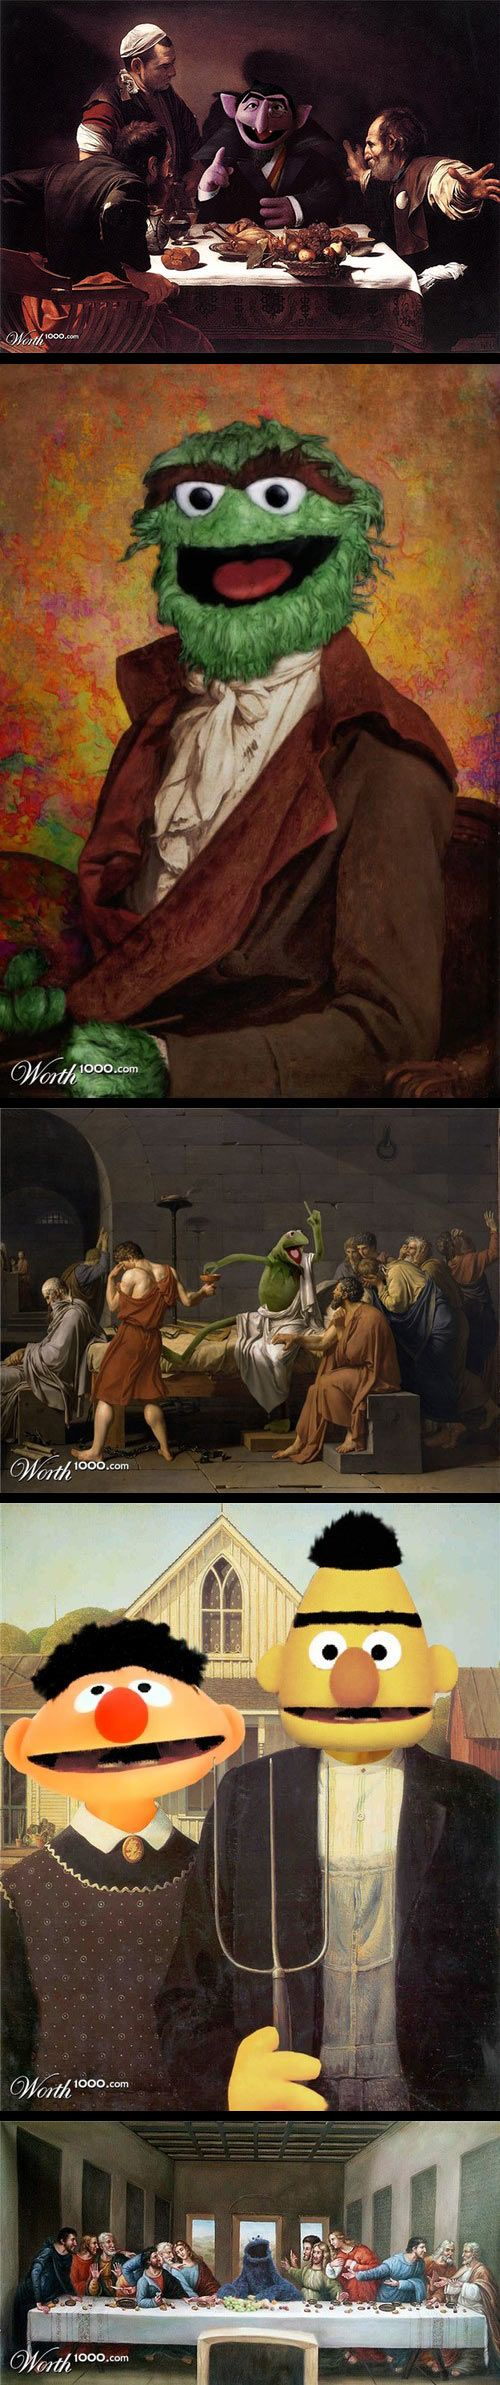 Classic Paintings with Sesame Street Characters Part 2